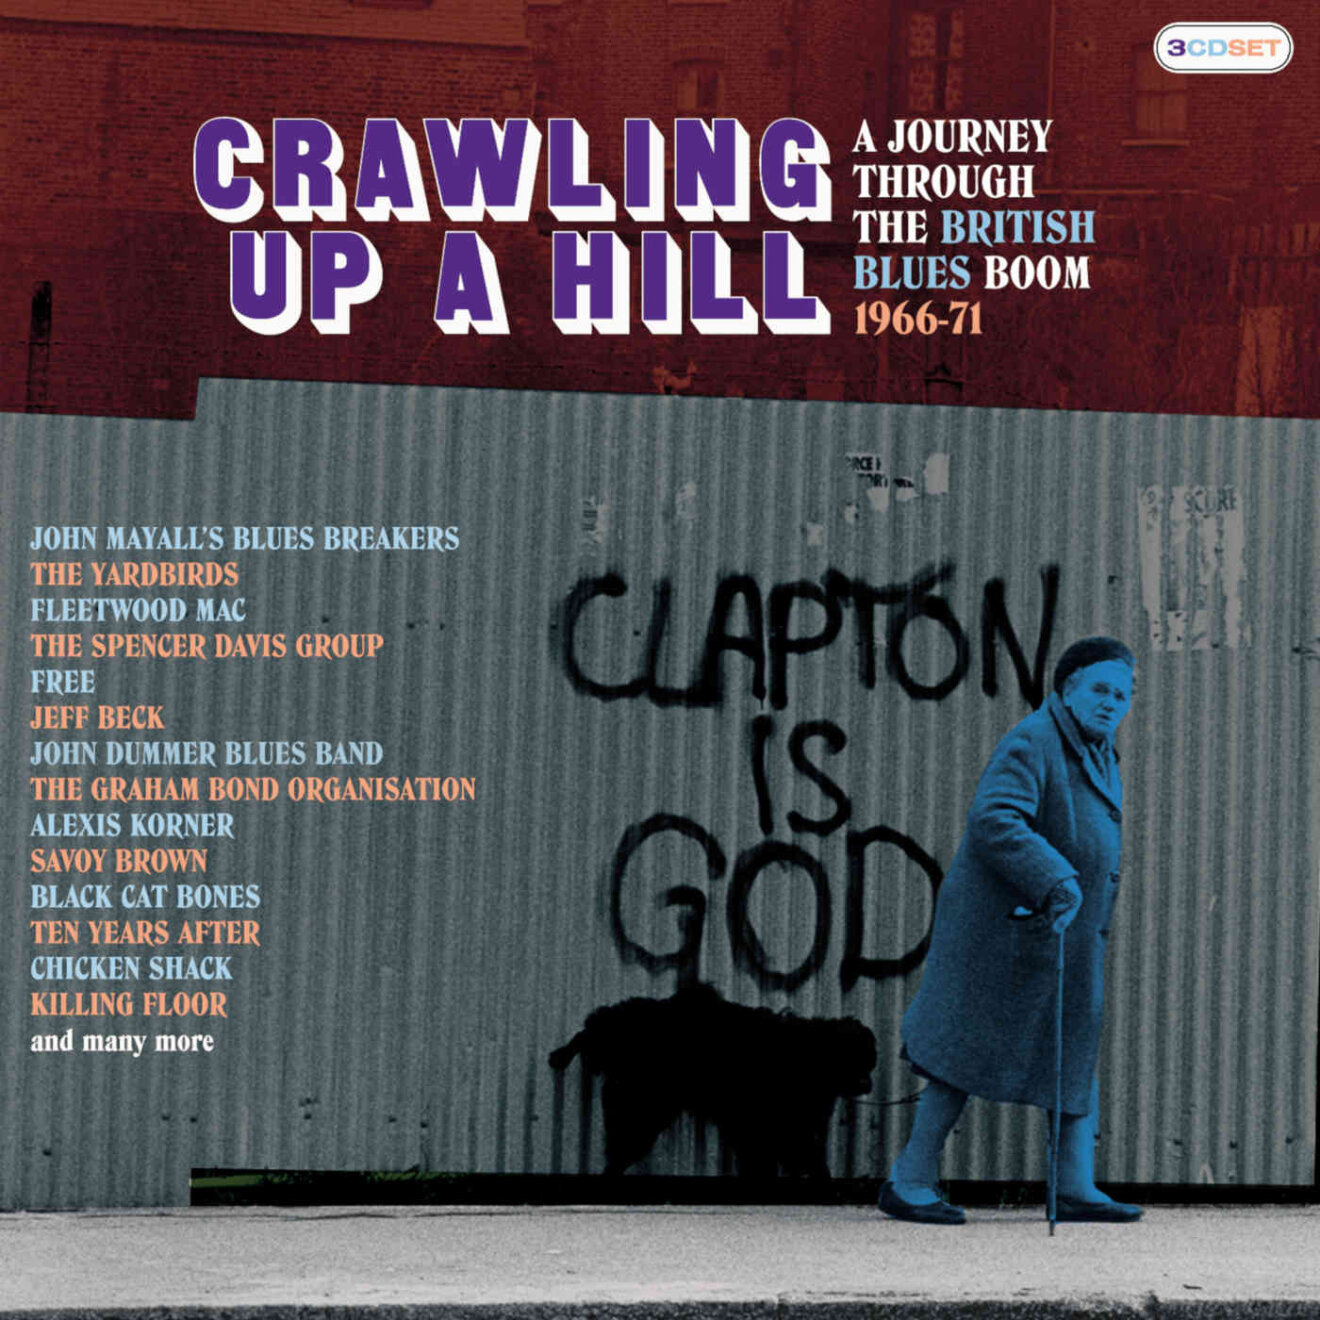 Crawling Up A Hill - Various Artists